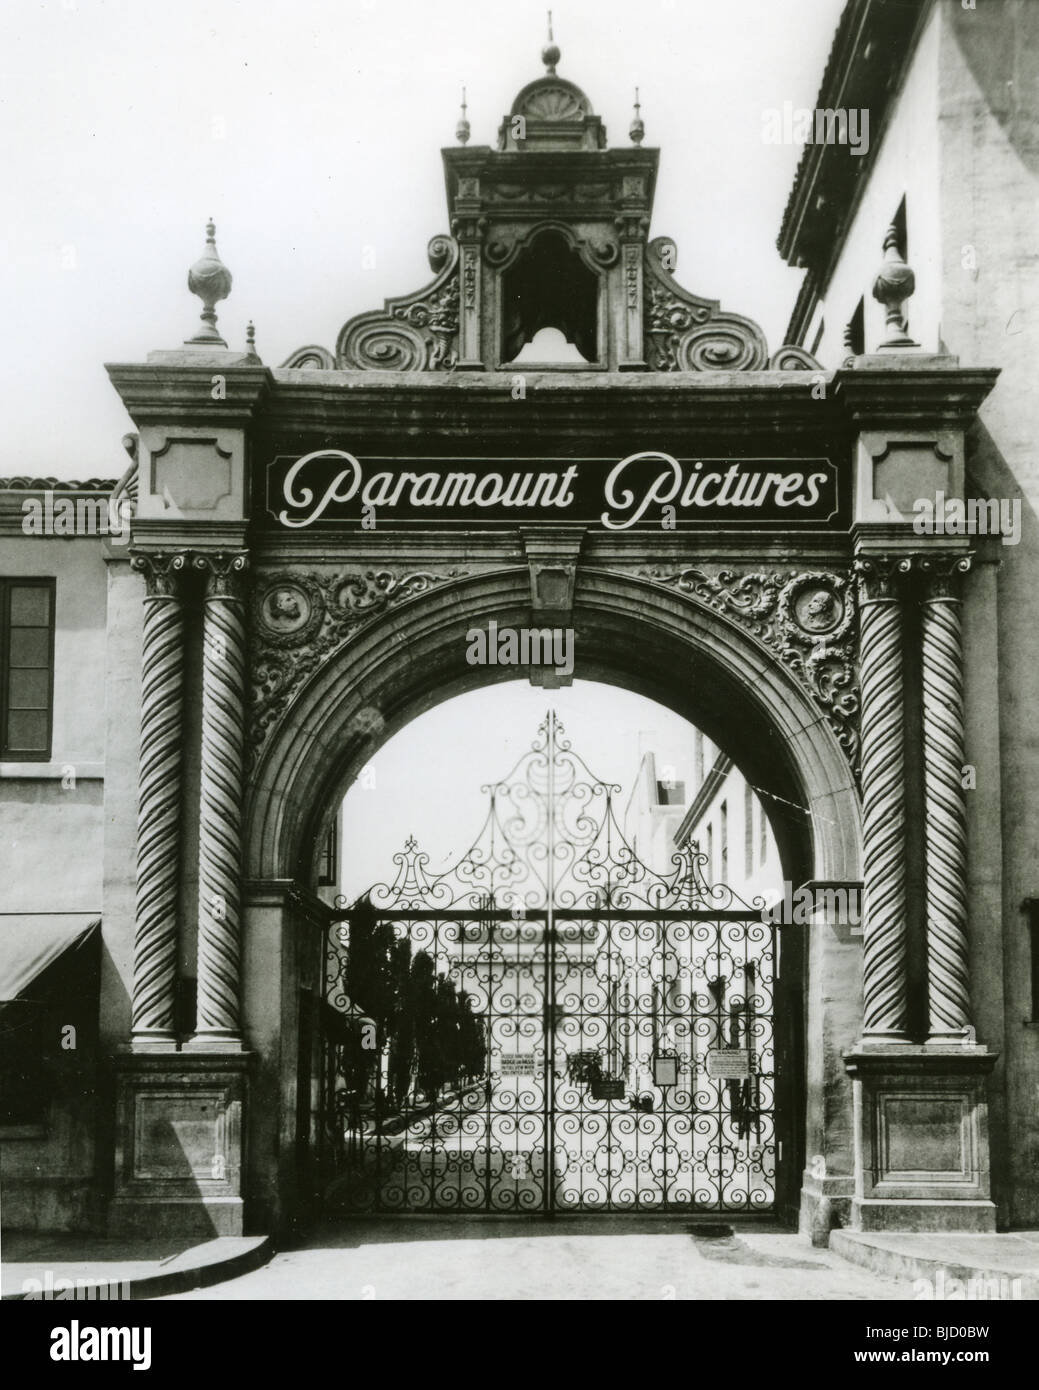 PARAMOUNT STUDIOS main entrance at 5451 Marathon in Hollywood in late 1920s - Stock Image